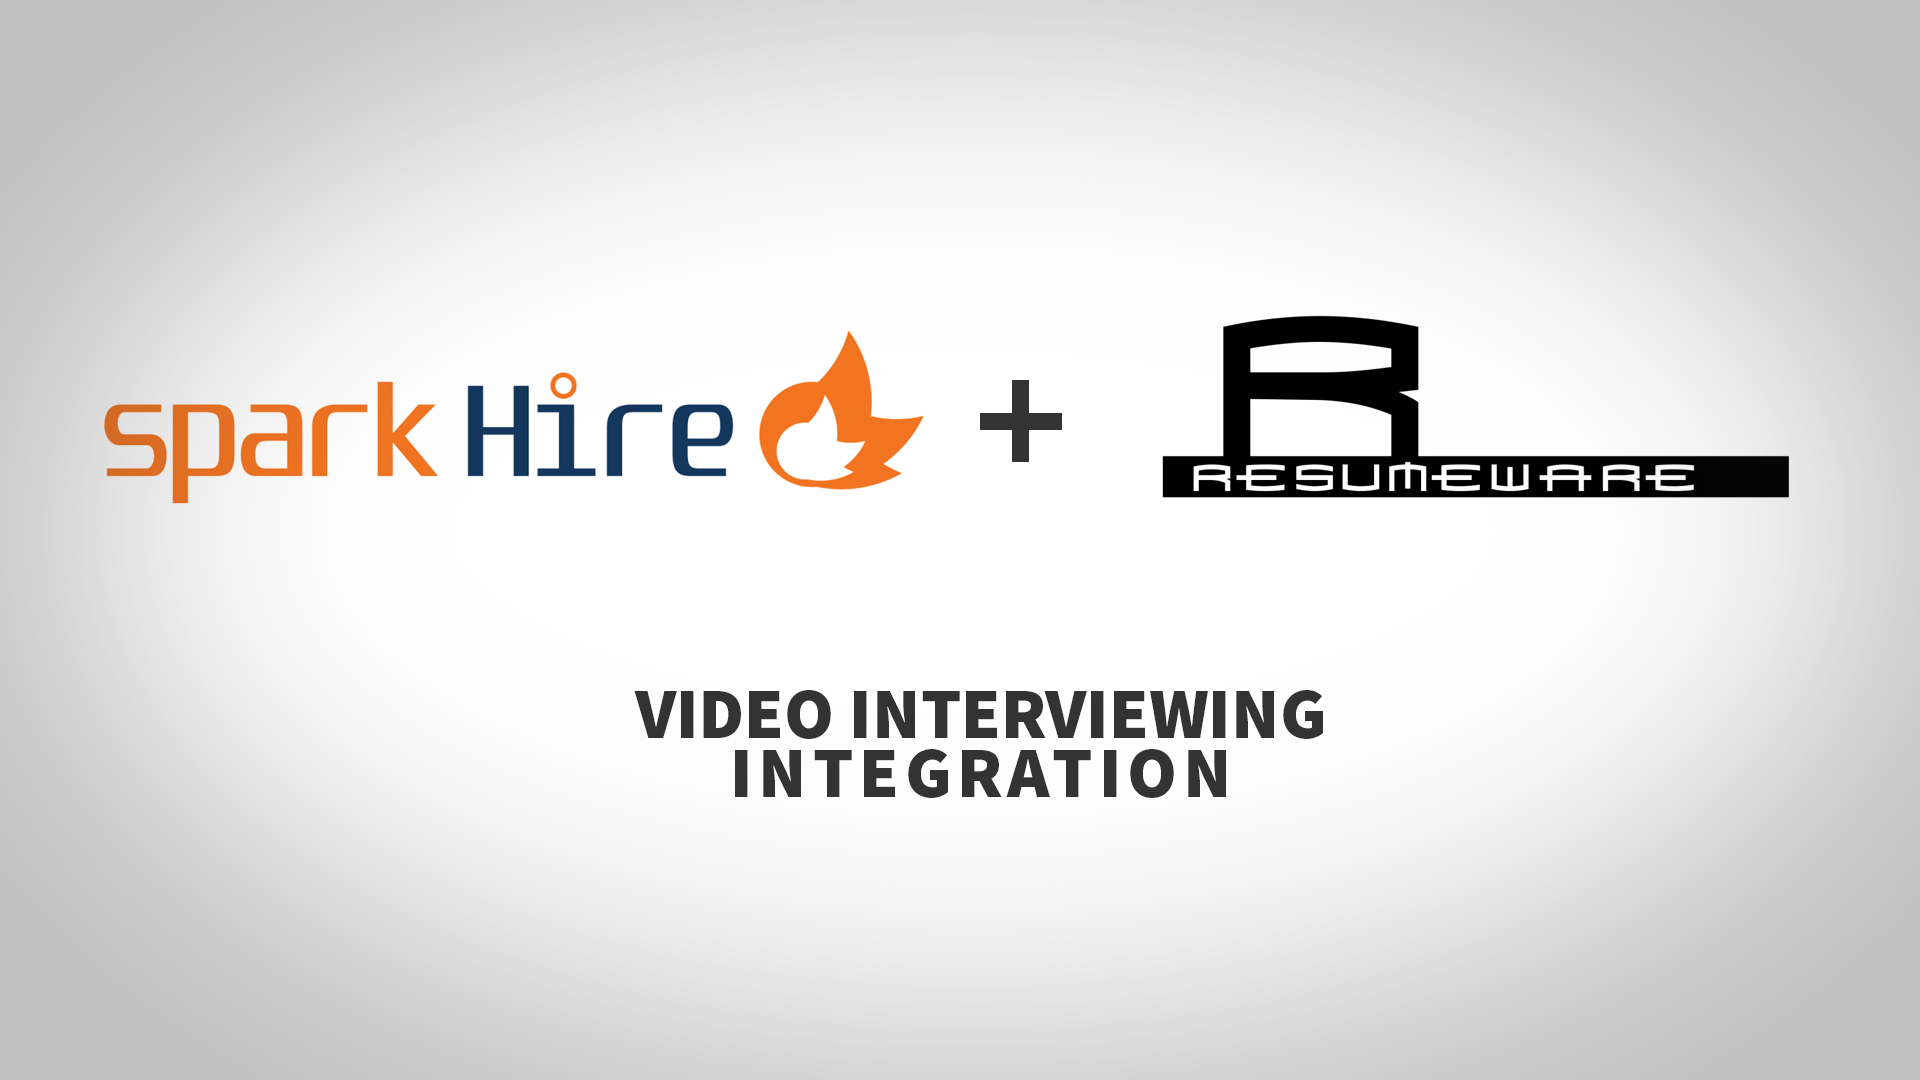 spark hire and resumeware video interviewing integration